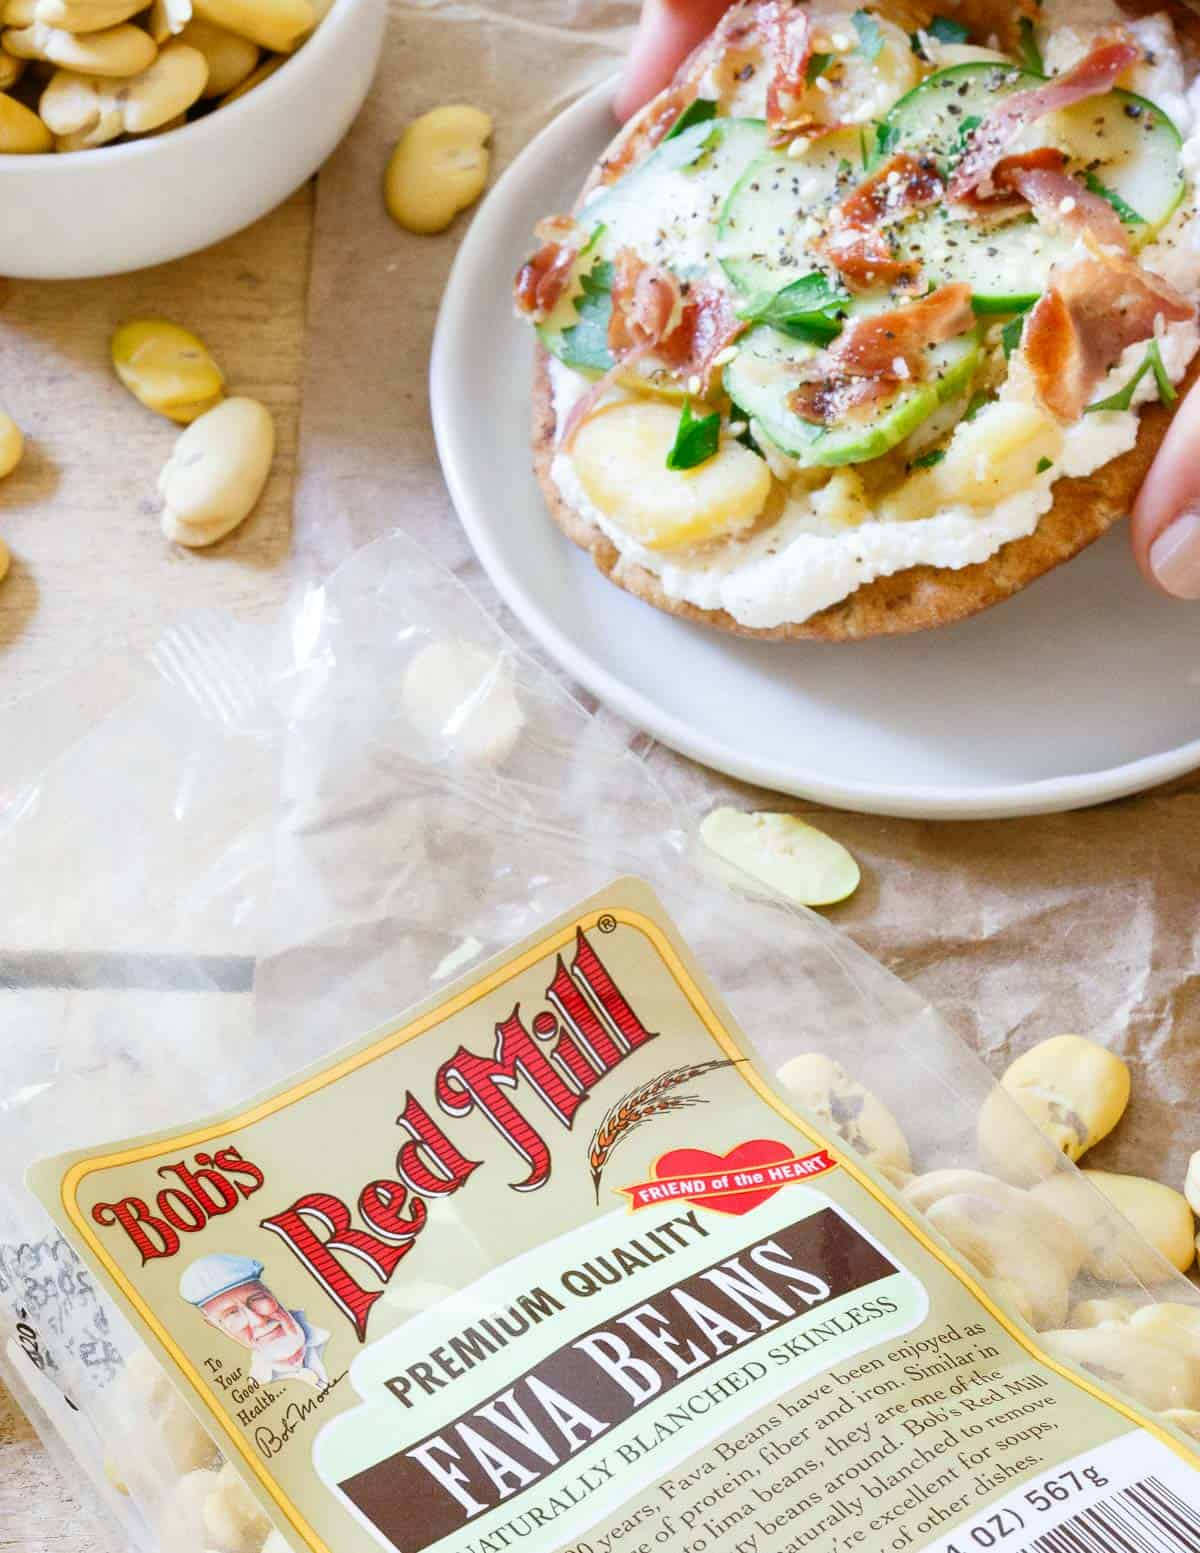 Creamy ricotta, buttery smashed fava beans, tangy cucumbers and salty prosciutto make these fava bean grilled pita bites an amazing light lunch or appetizer.